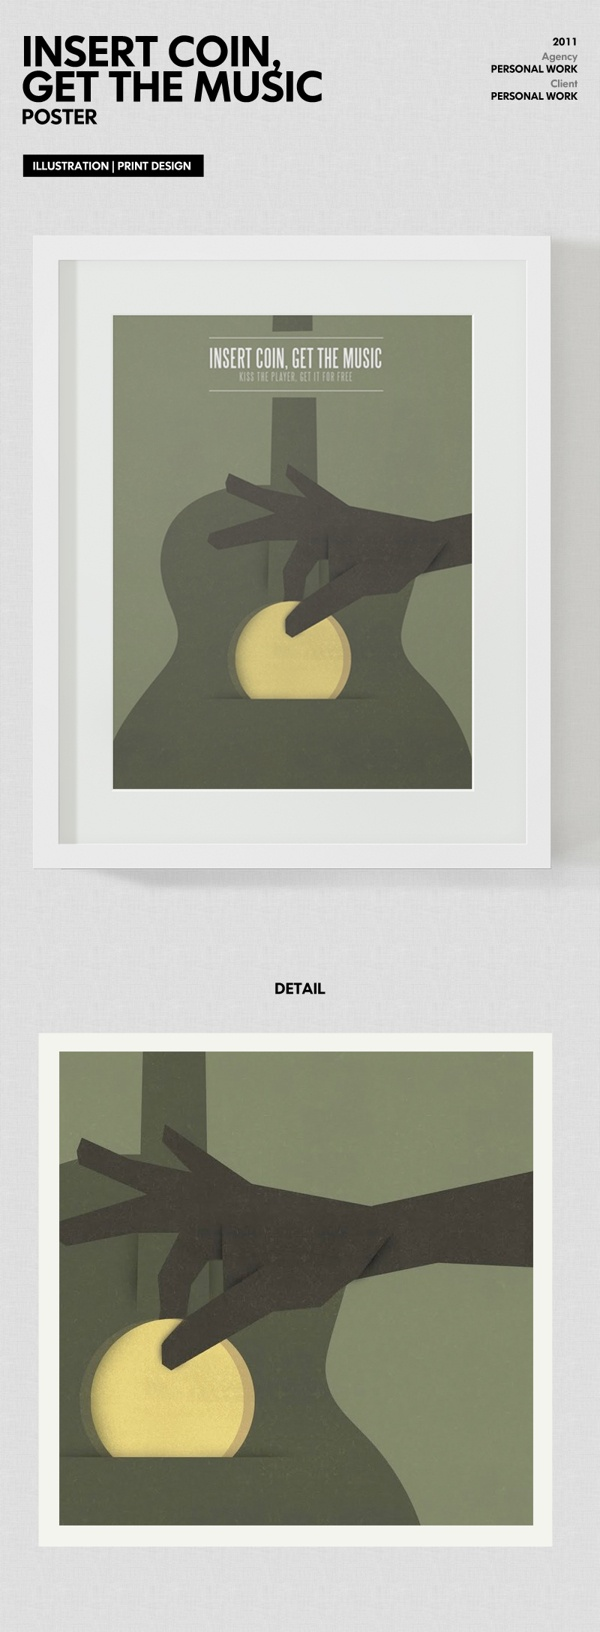 Insert Coin, Get The Music by Luca Armari, via Behance